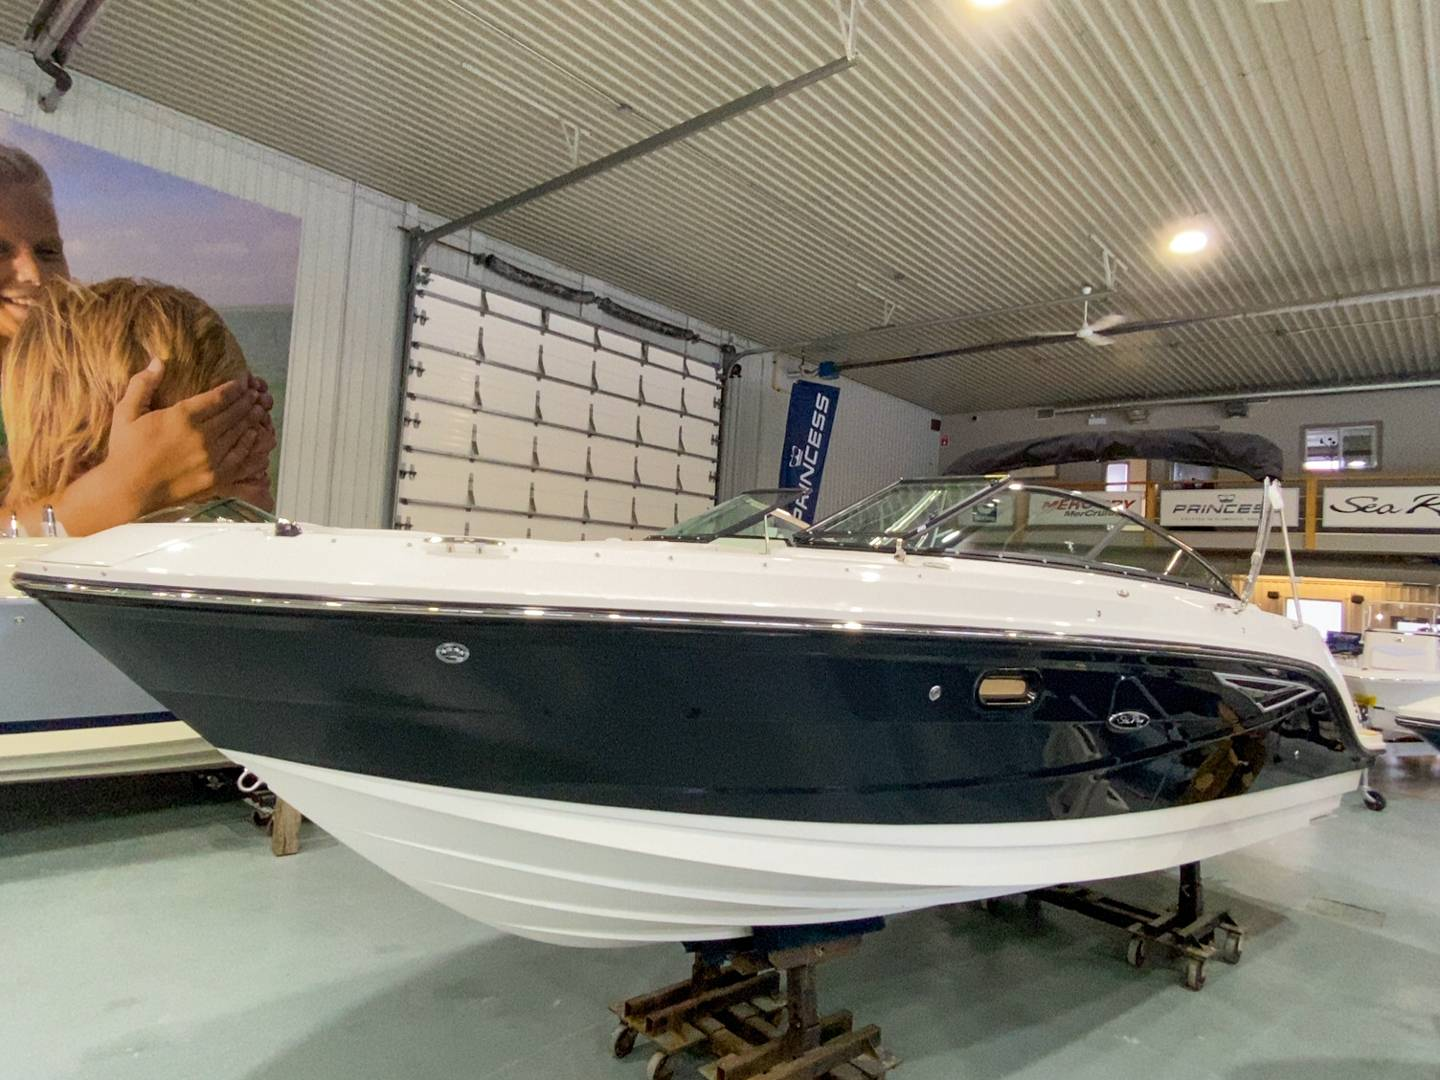 2021 Sea Ray boat for sale, model of the boat is SLX 250 & Image # 16 of 16